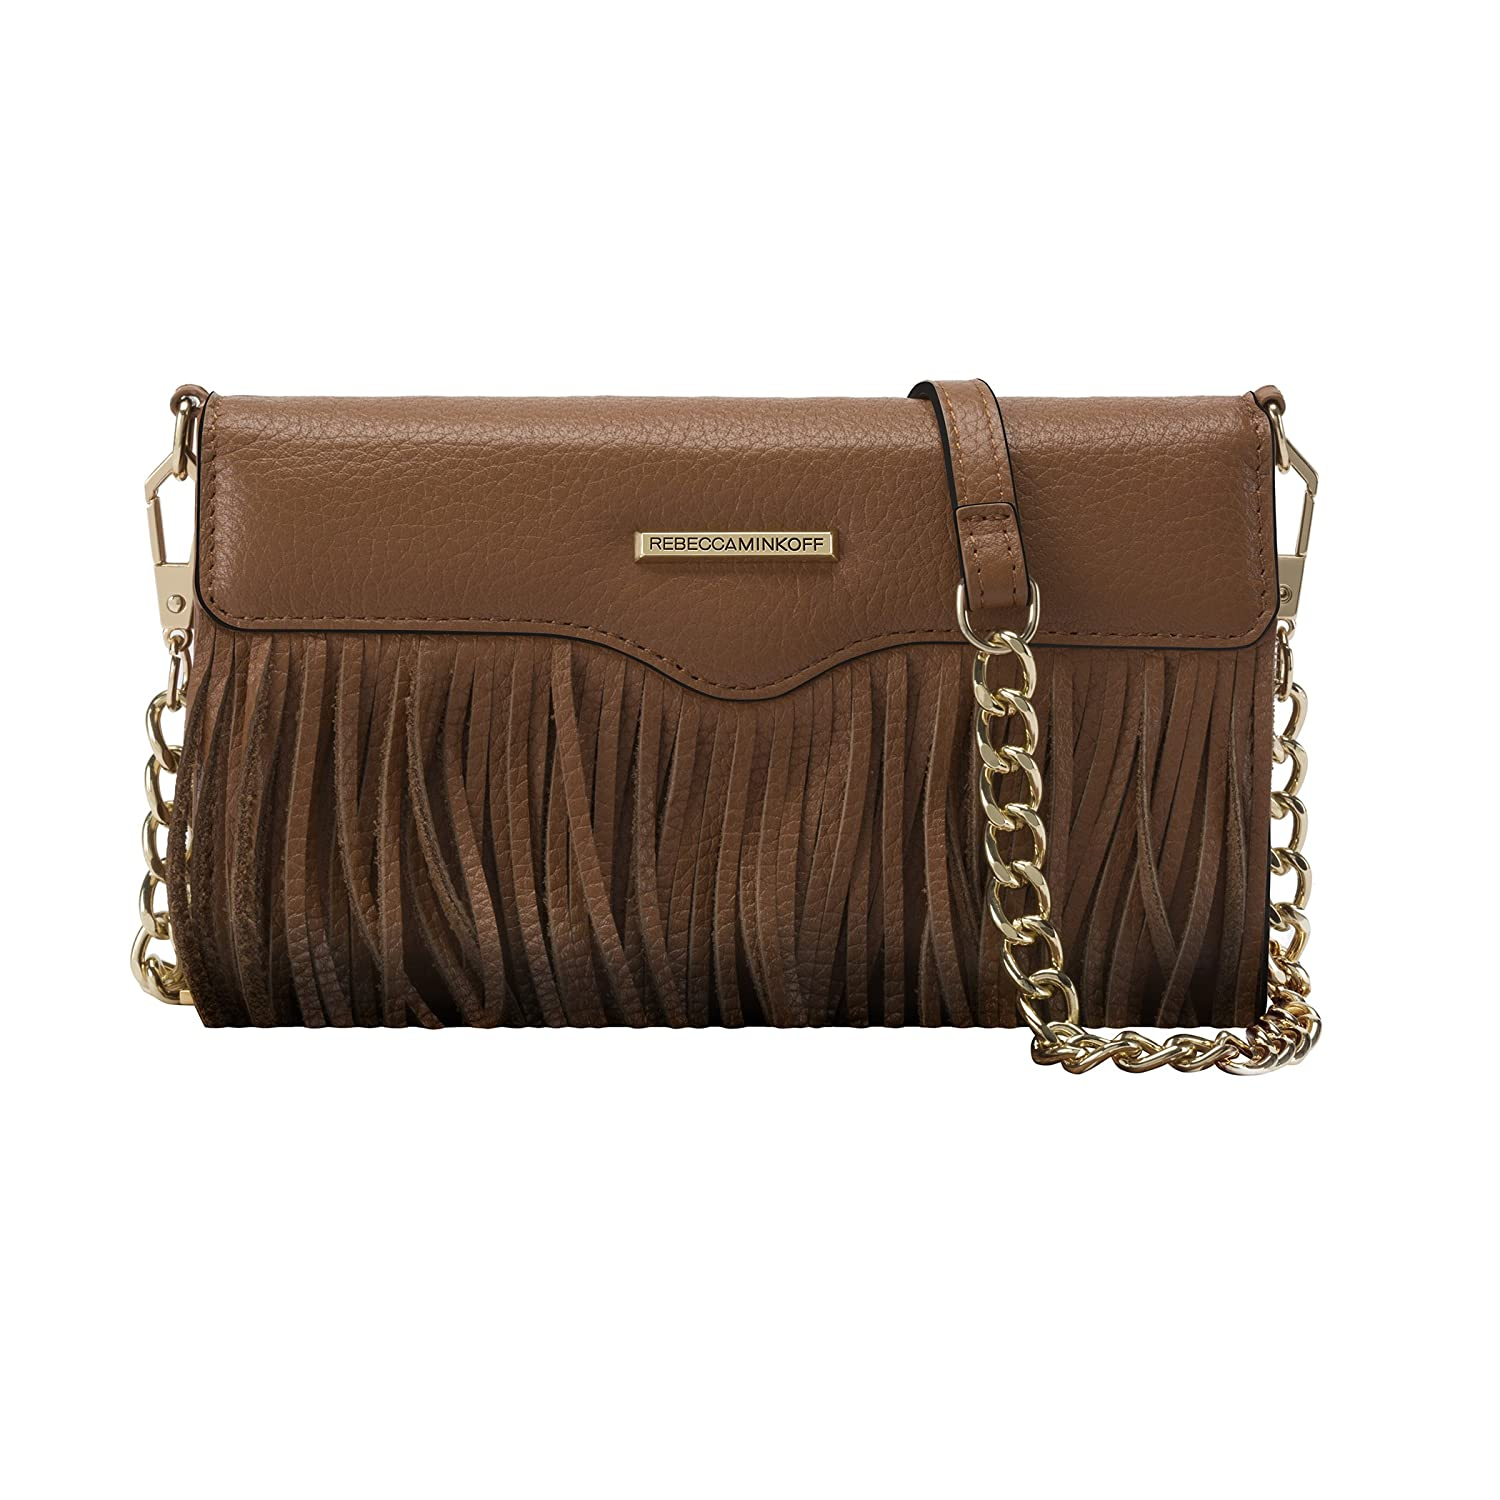 Fashion style Minkoff rebecca wearable tech for lady